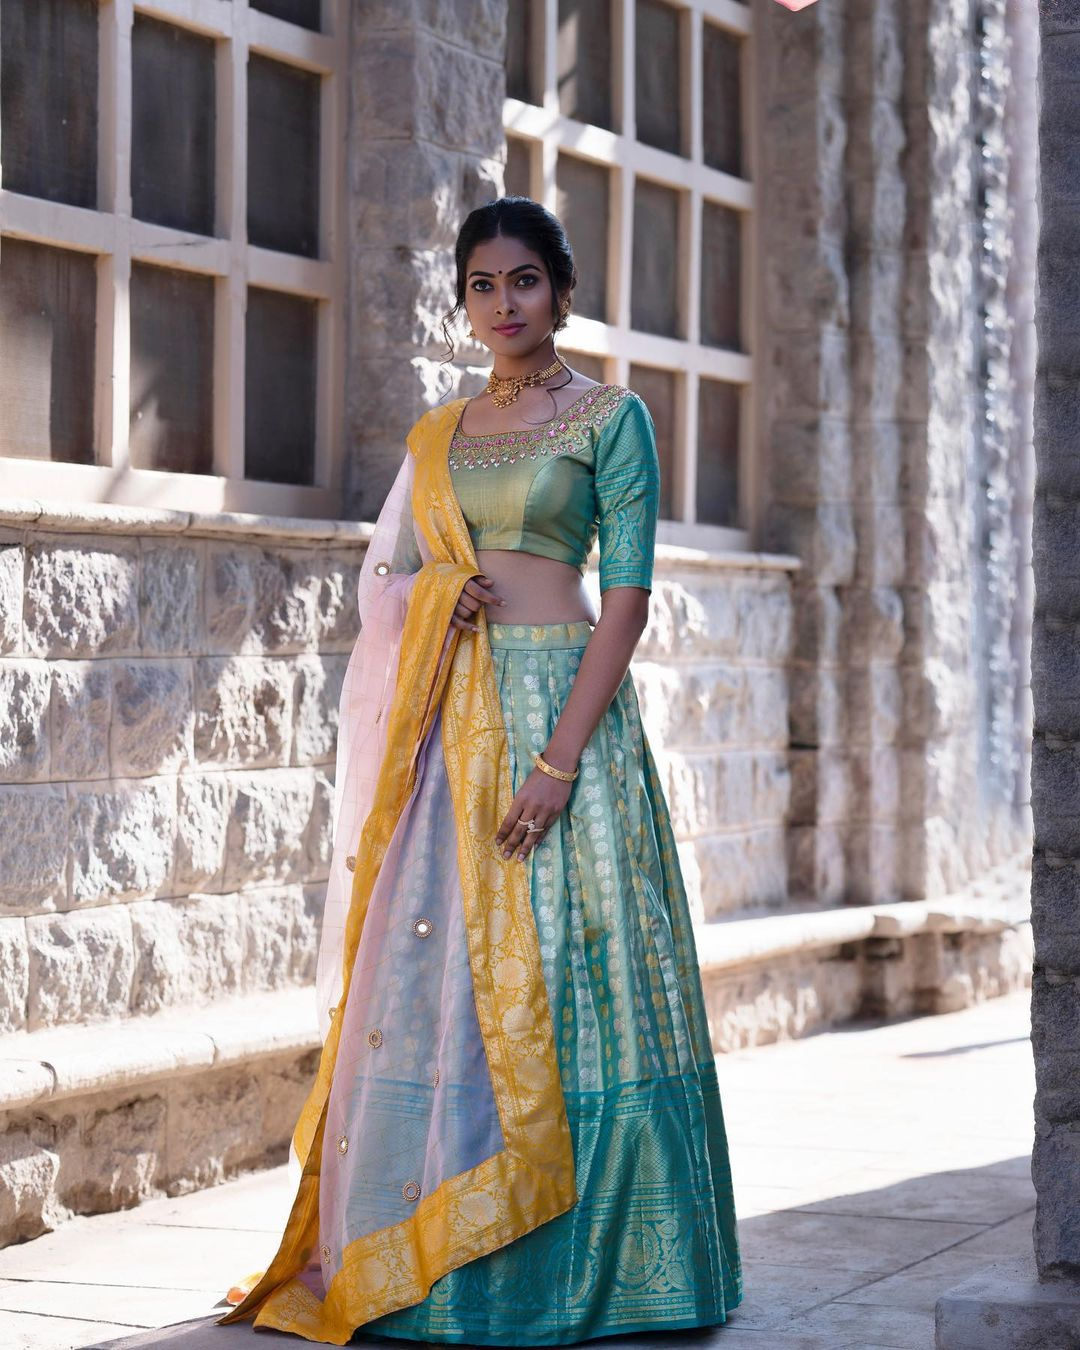 Actoress Divi in an icy blue kanchi pattu bridal lehenga by Priva collective.   lehenga look   ladies lancha   latest lehenga designs for wedding with price   2020-11-26